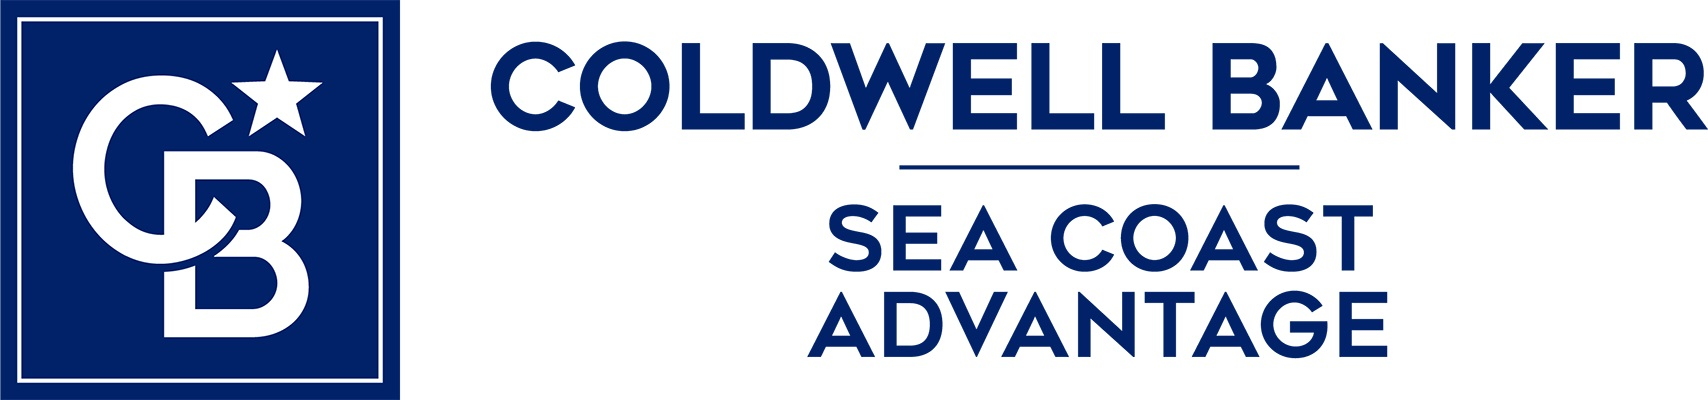 Lisa Pridgen - Coldwell Banker Sea Coast Advantage Realty